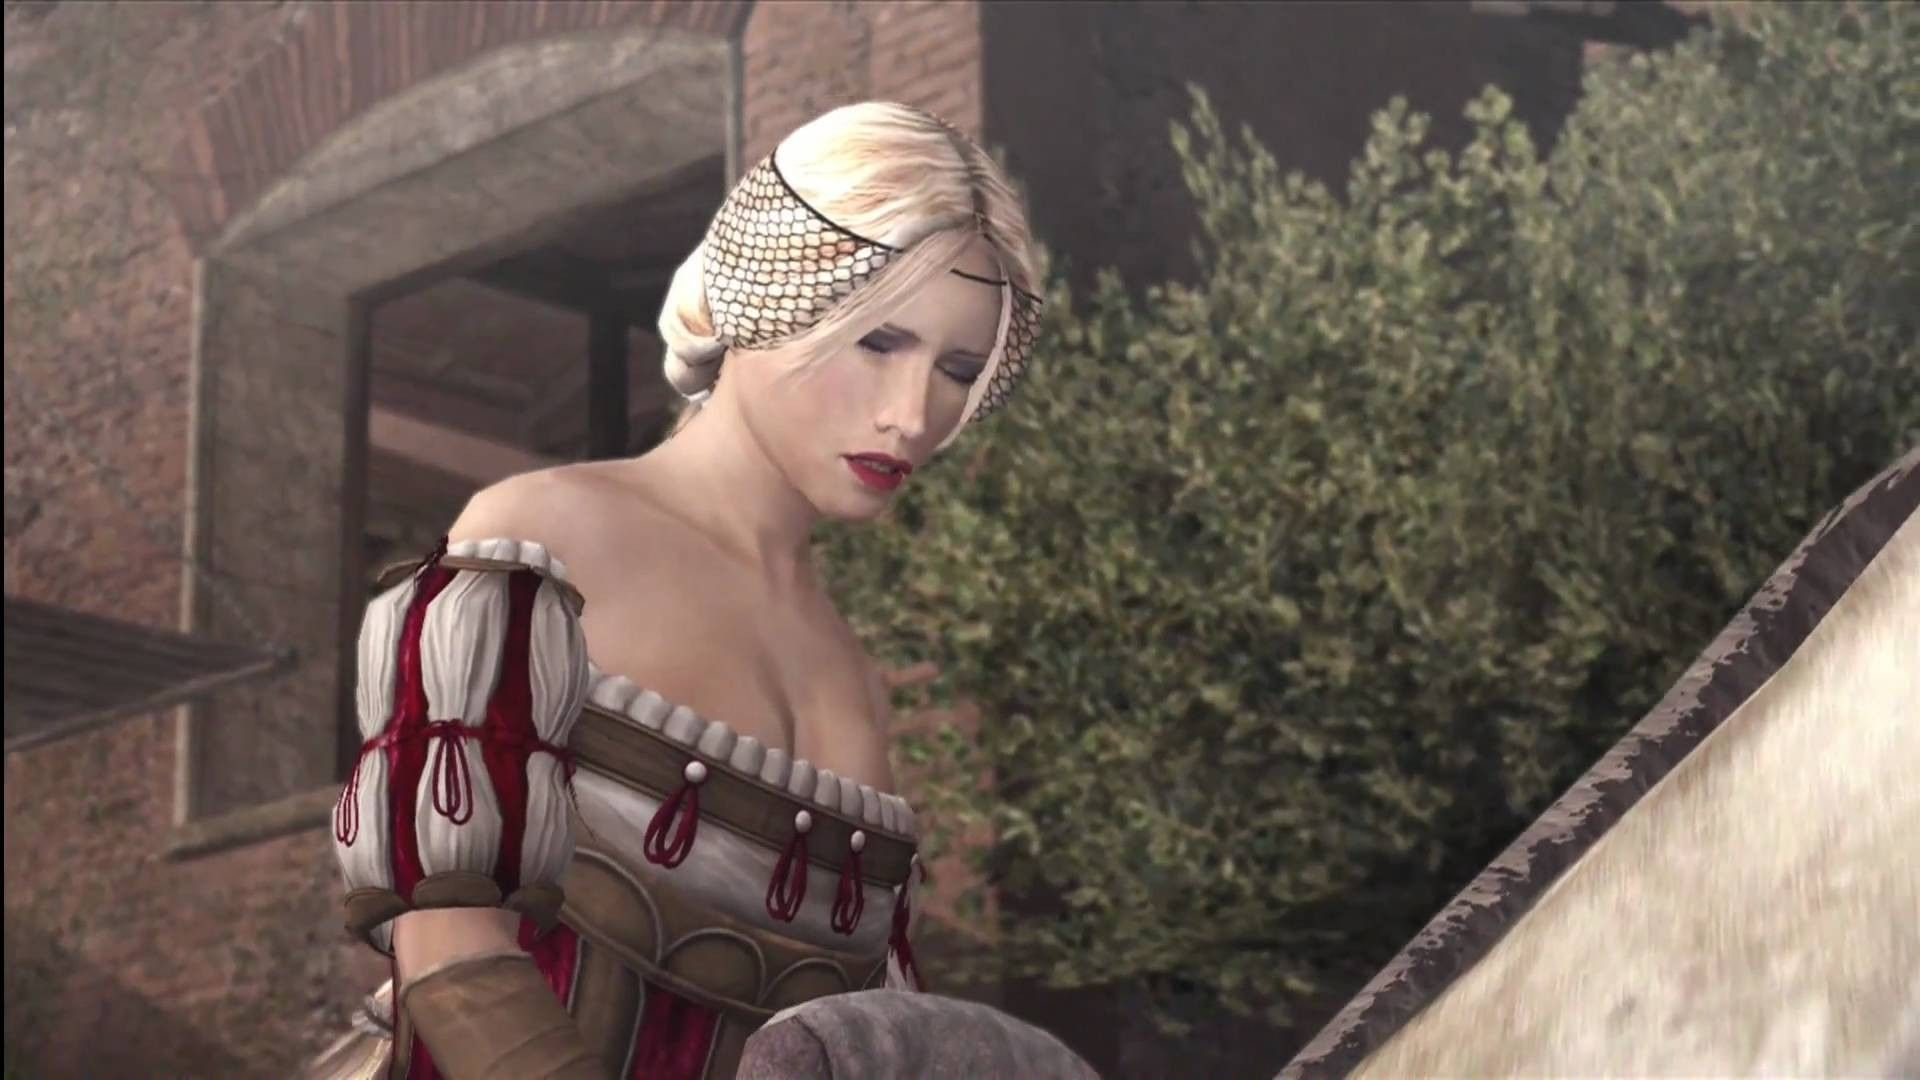 Assassin's creed brotherhood girls naked hentia clips